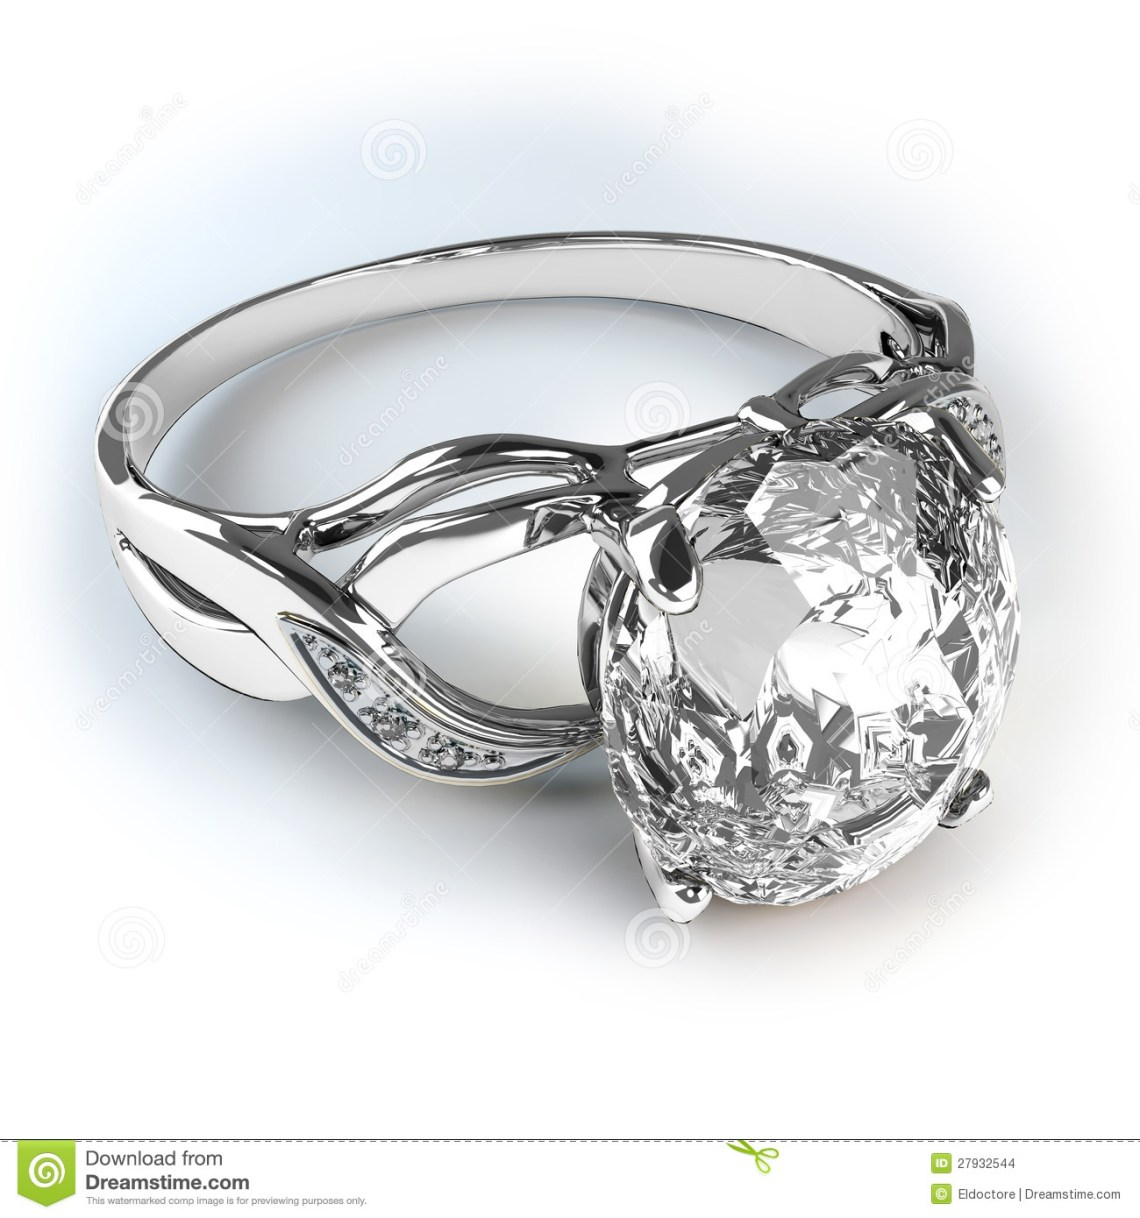 Image Result For Sell En Ement Ring To Jeweler